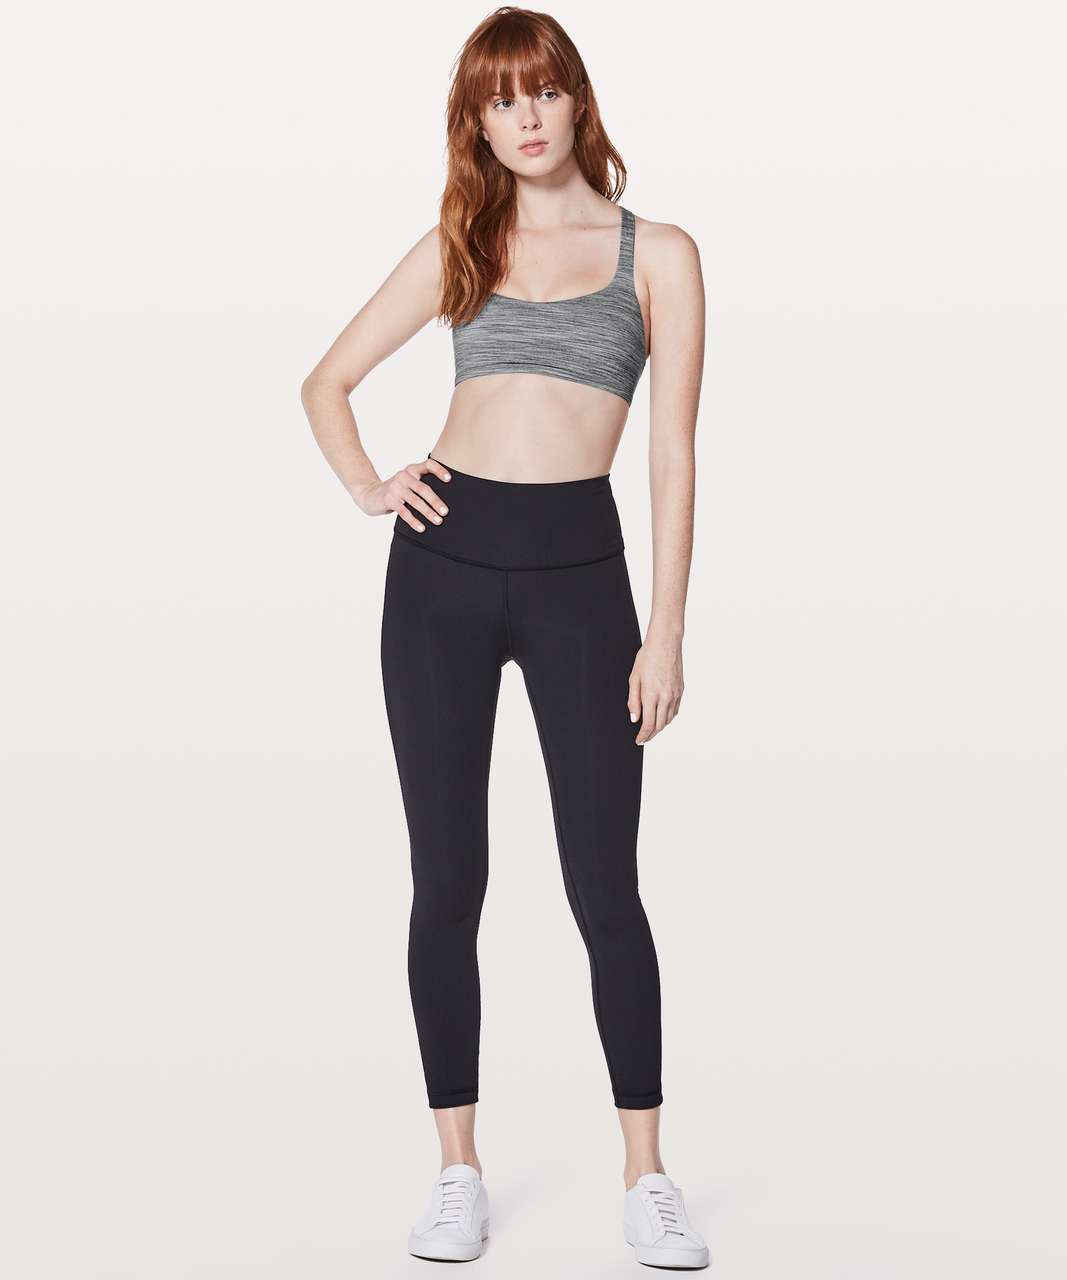 Lululemon Free To Be Bra (Wild) - Space Dye Camo Seal Grey Deep Coal / Flash Light Tone